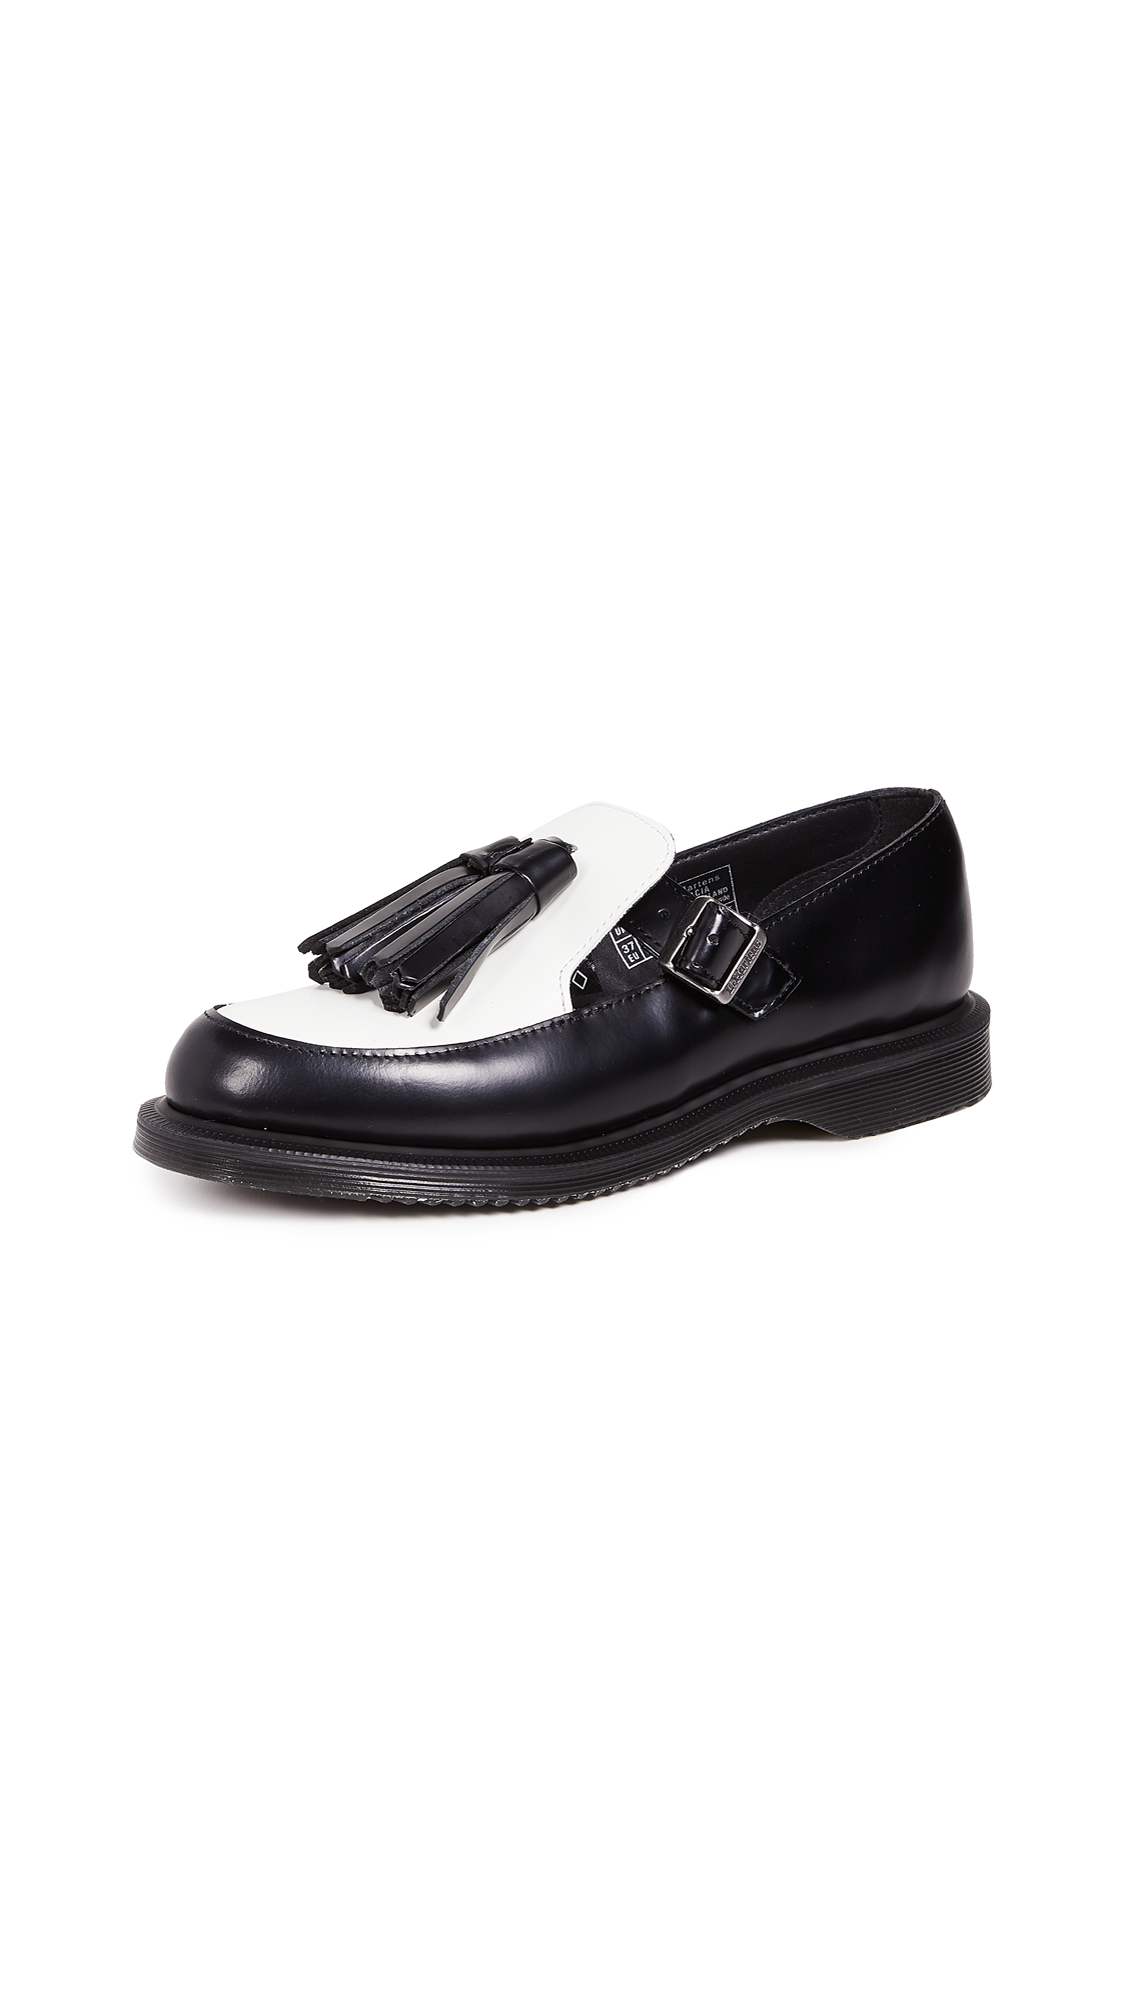 Dr. Martens Gracia Mary Jane Shoes - Black